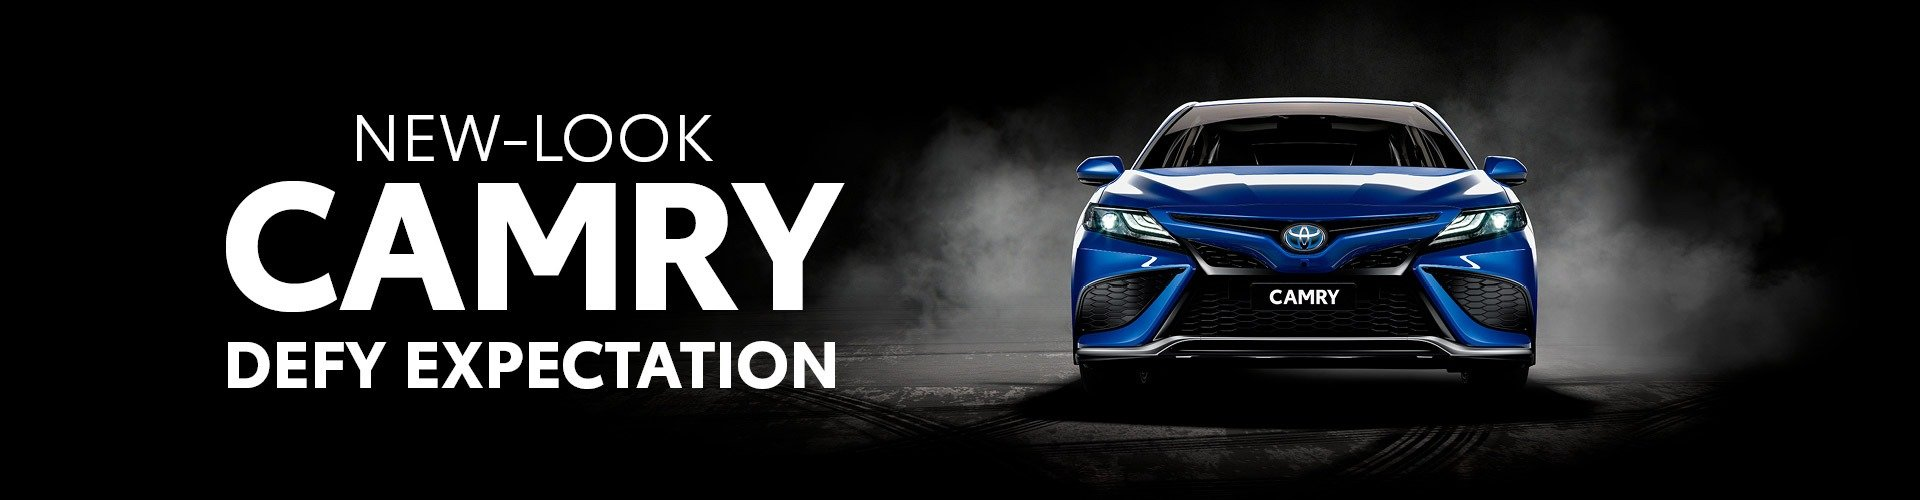 Toyota New-Look Camry - Defy Expectation